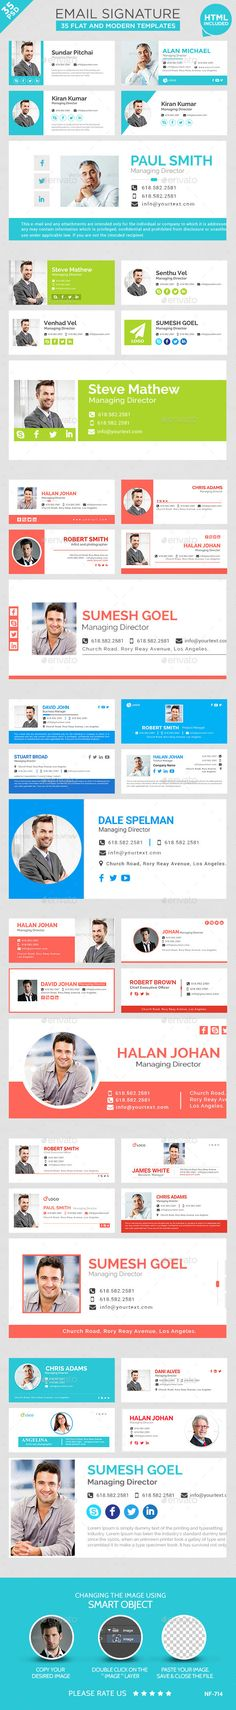 Email Signature - 35 Templates by doto Email Signature Templates PSD and HTML Files included Clean & Professional Design Multipurpose Use Completely editable Easily